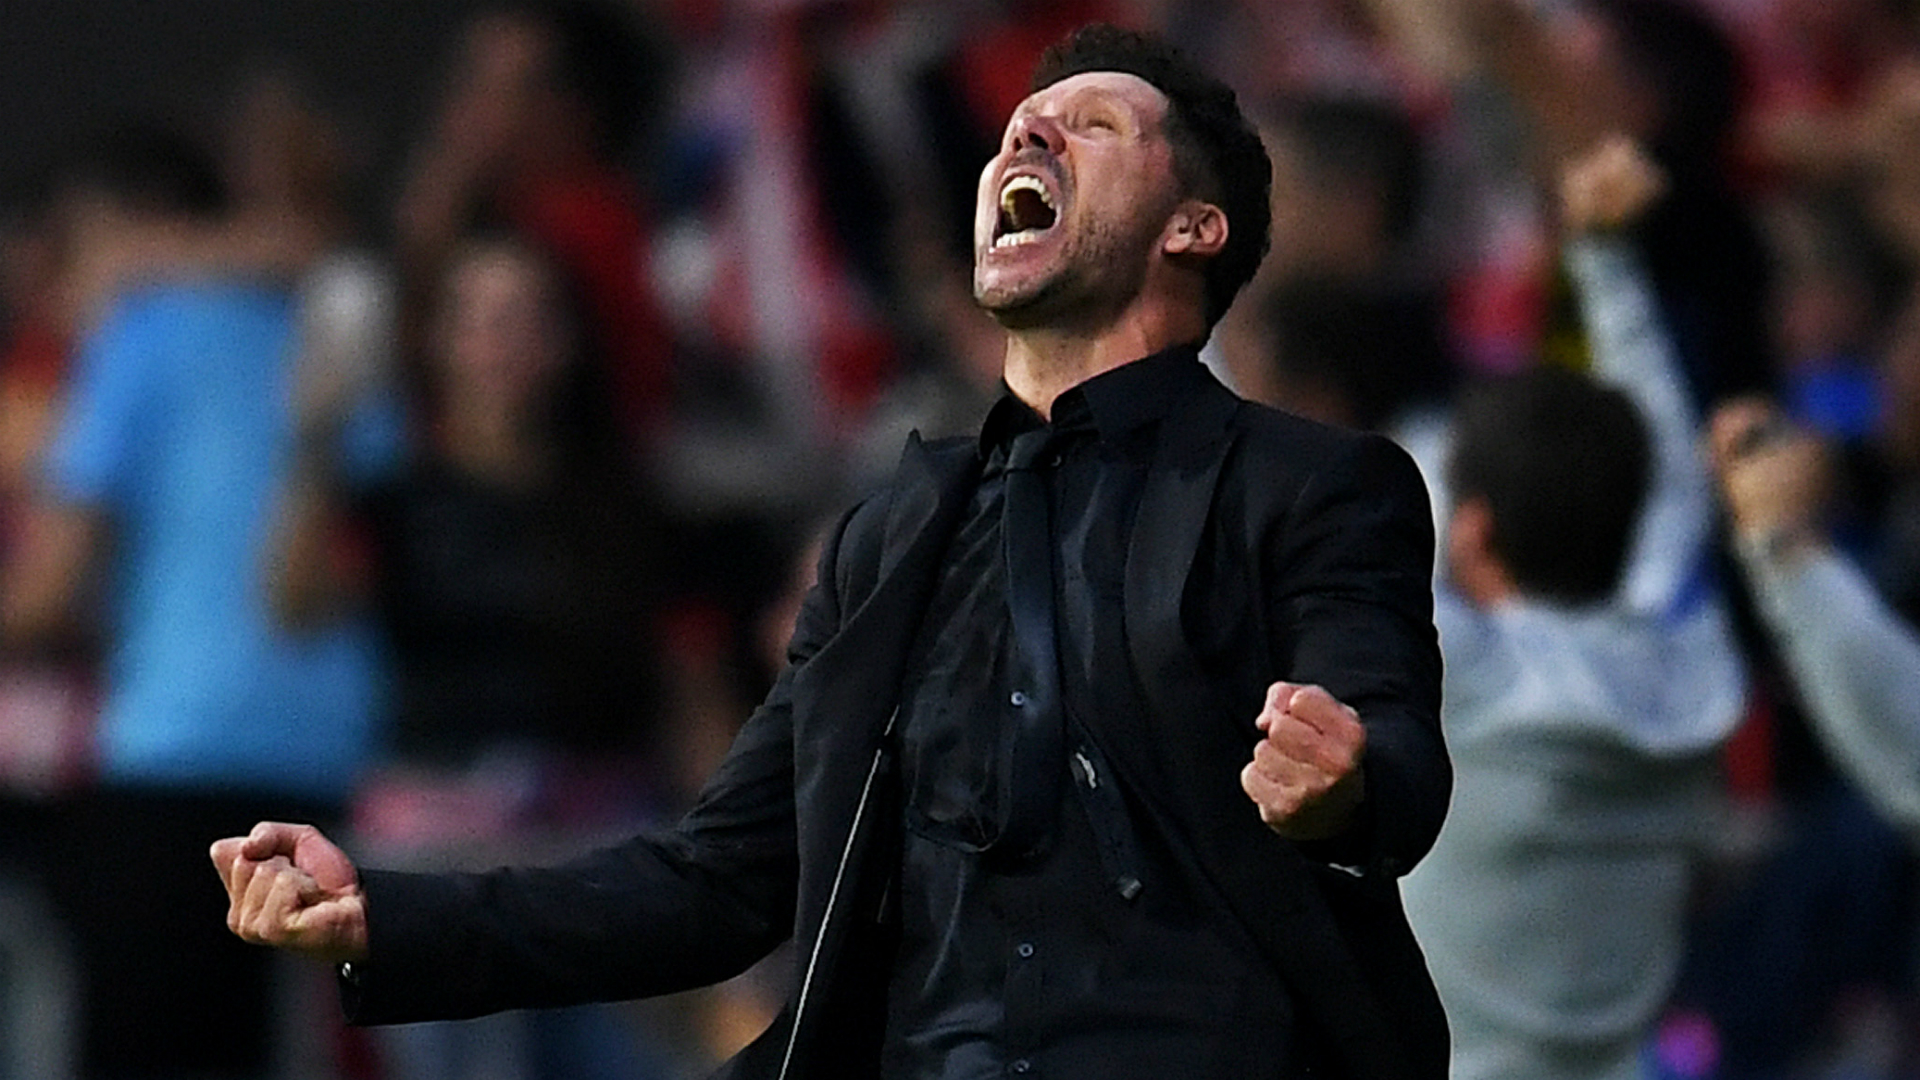 Simeone hails 'extraordinary' atmosphere after dramatic Atletico win